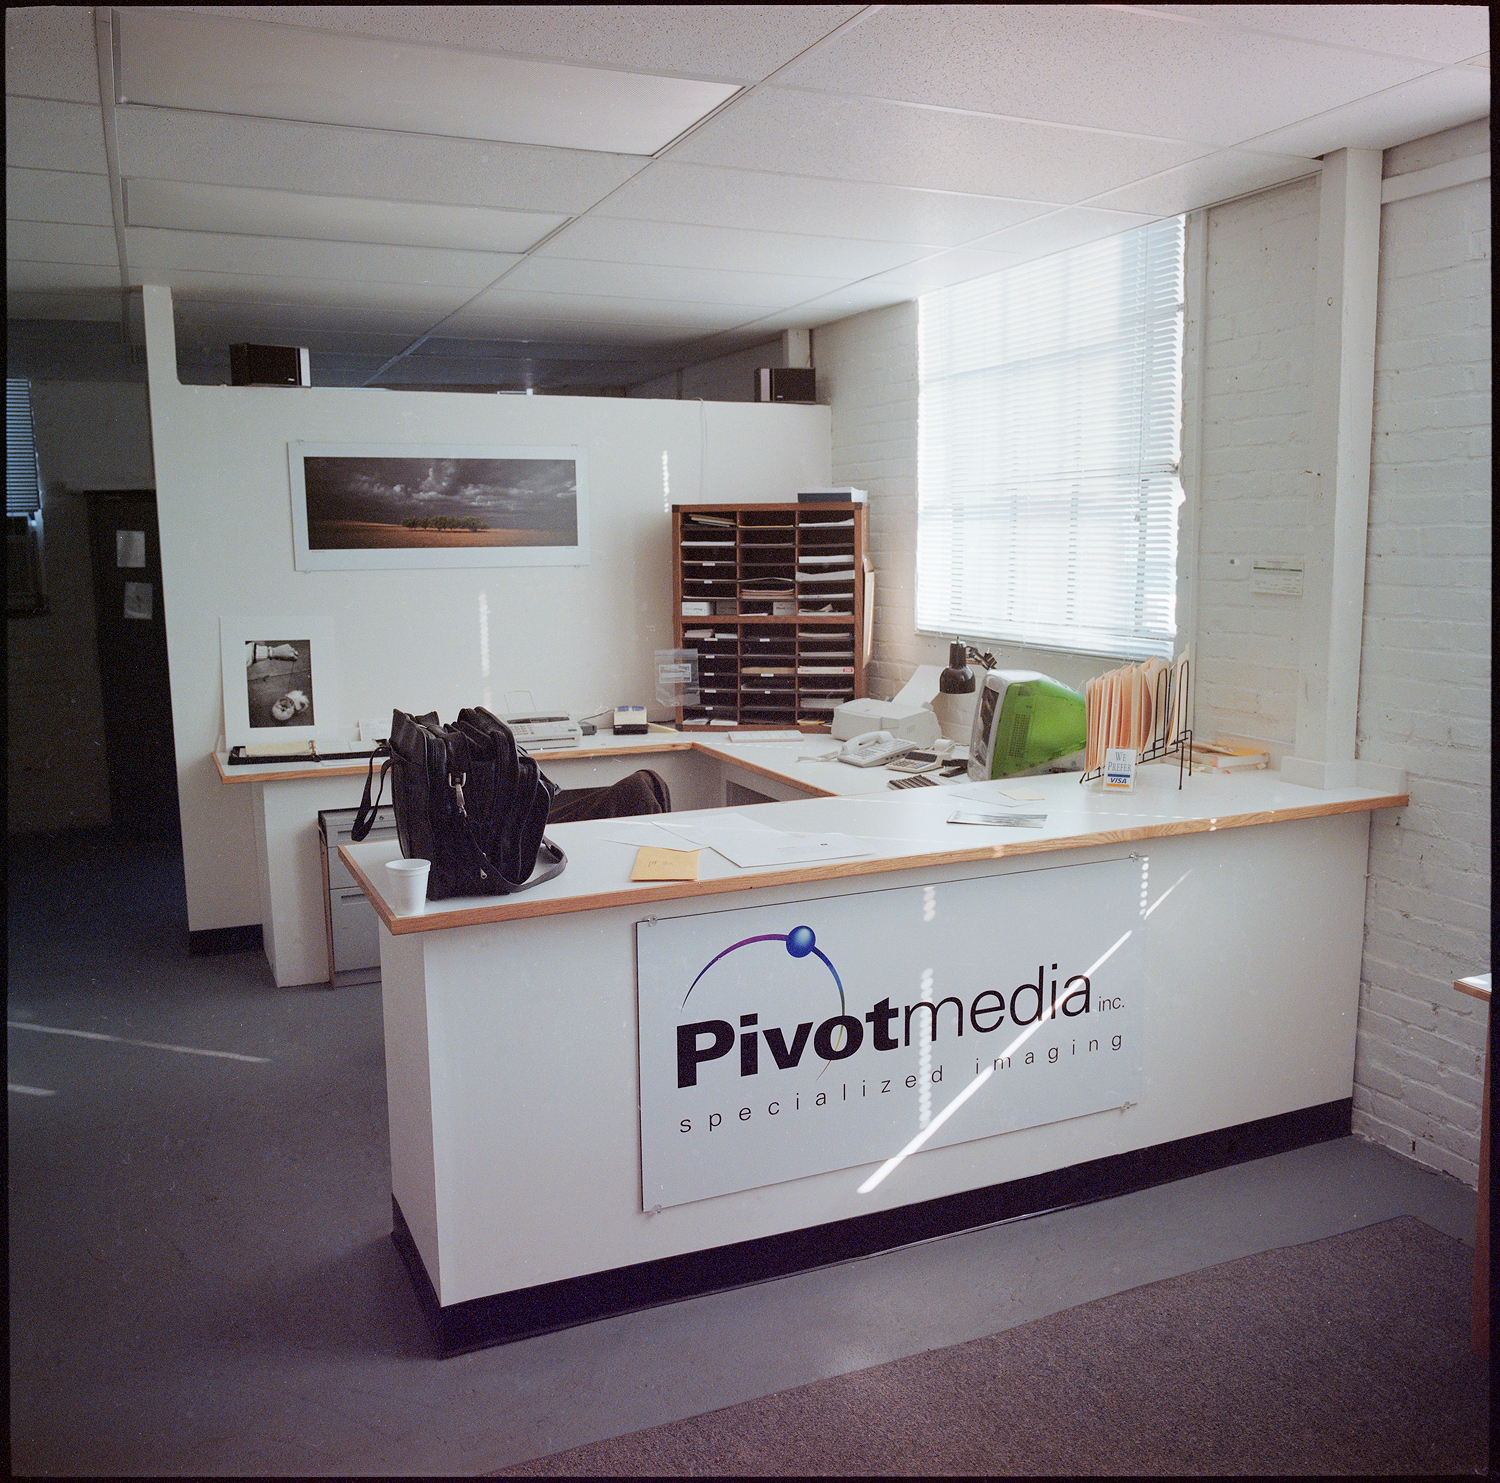 Pivot Media is founded